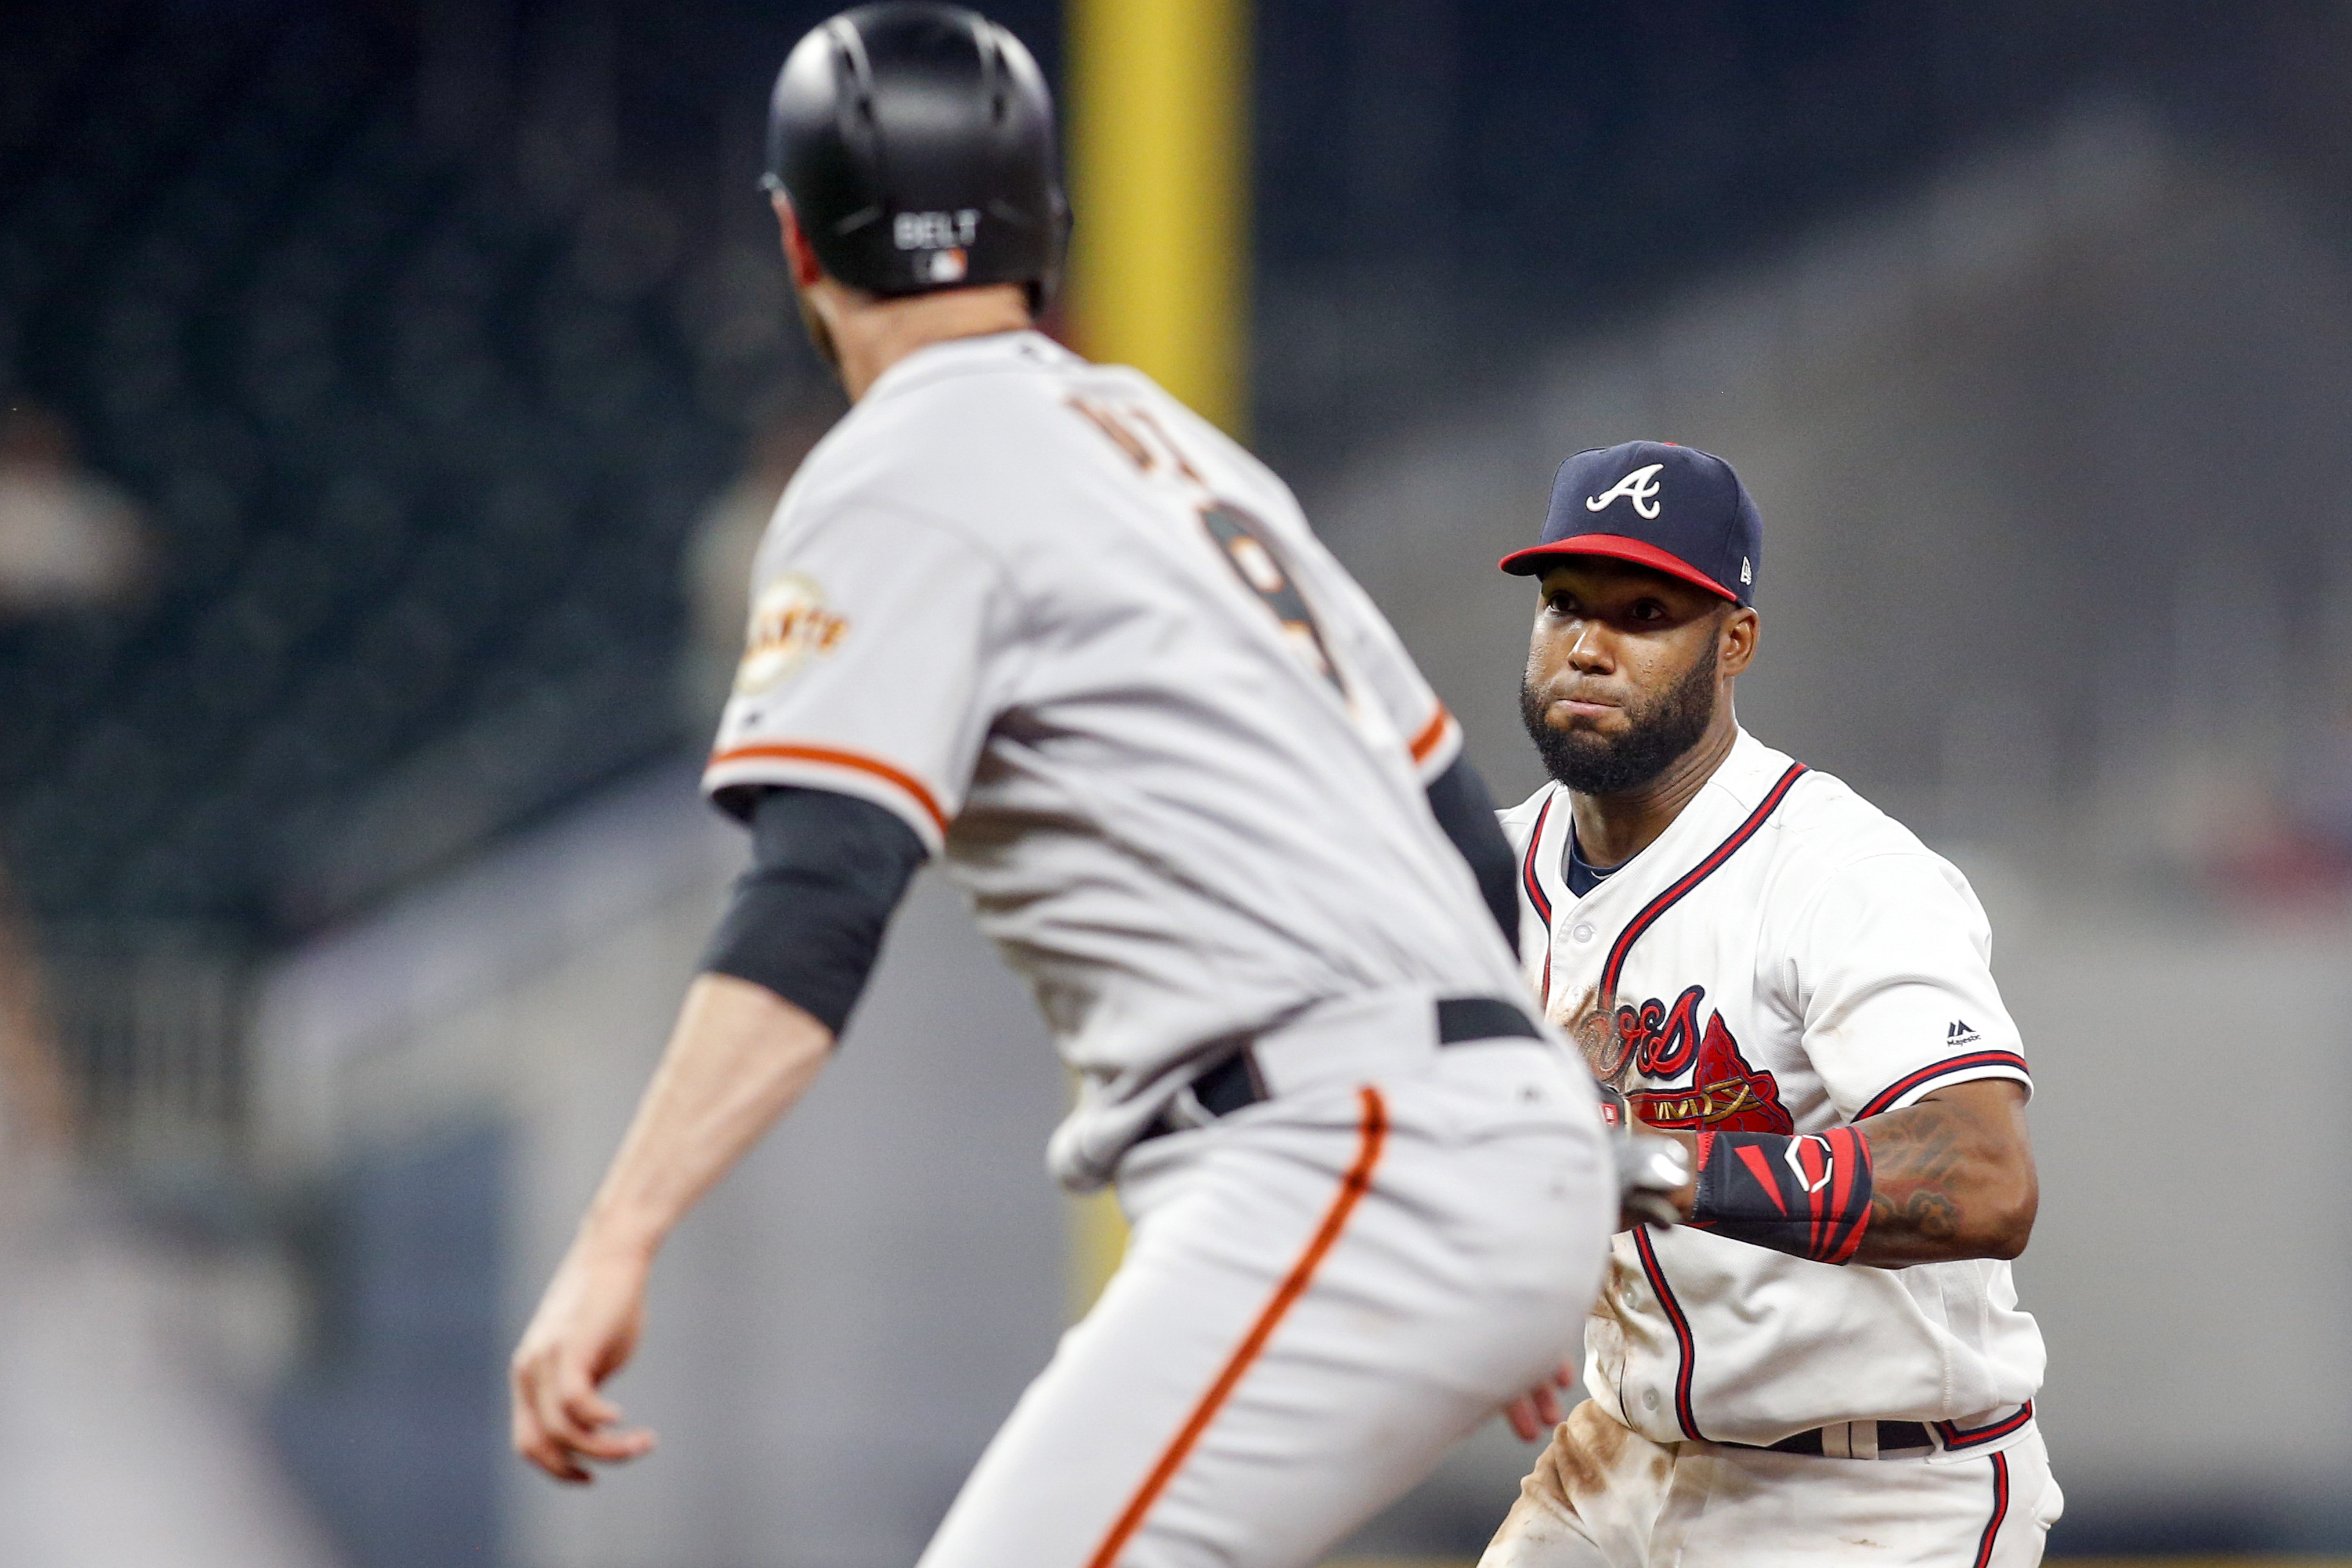 10126945-mlb-san-francisco-giants-at-atlanta-braves